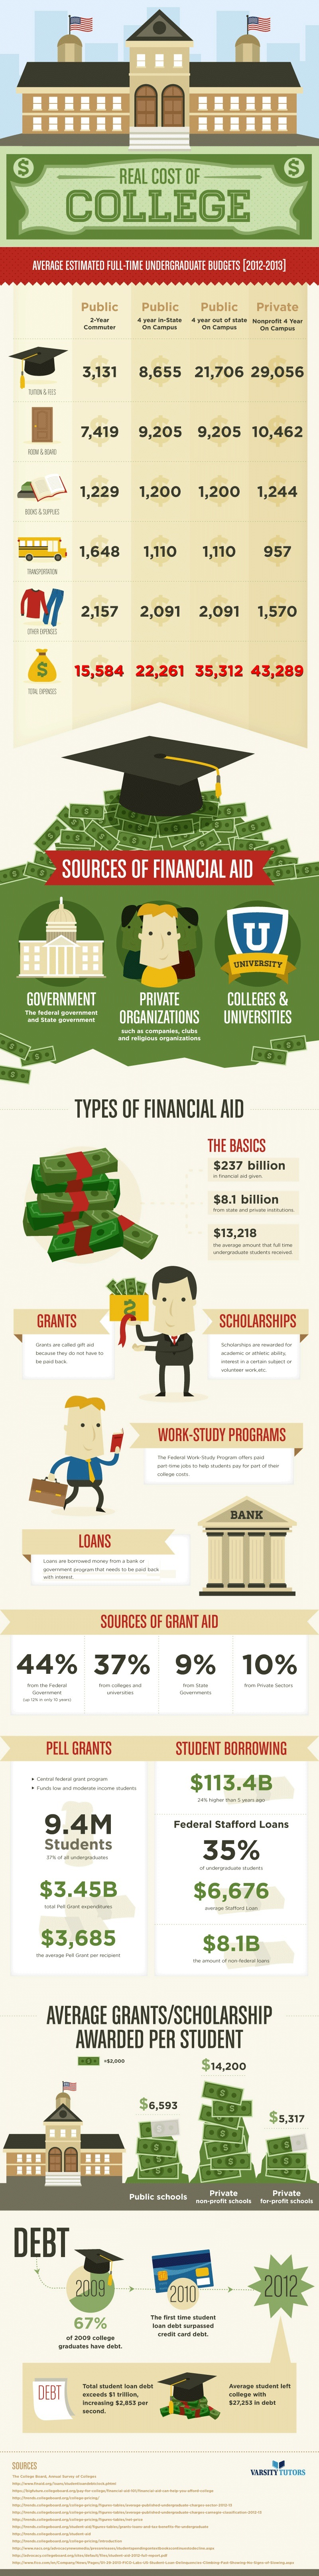 The True Cost of College